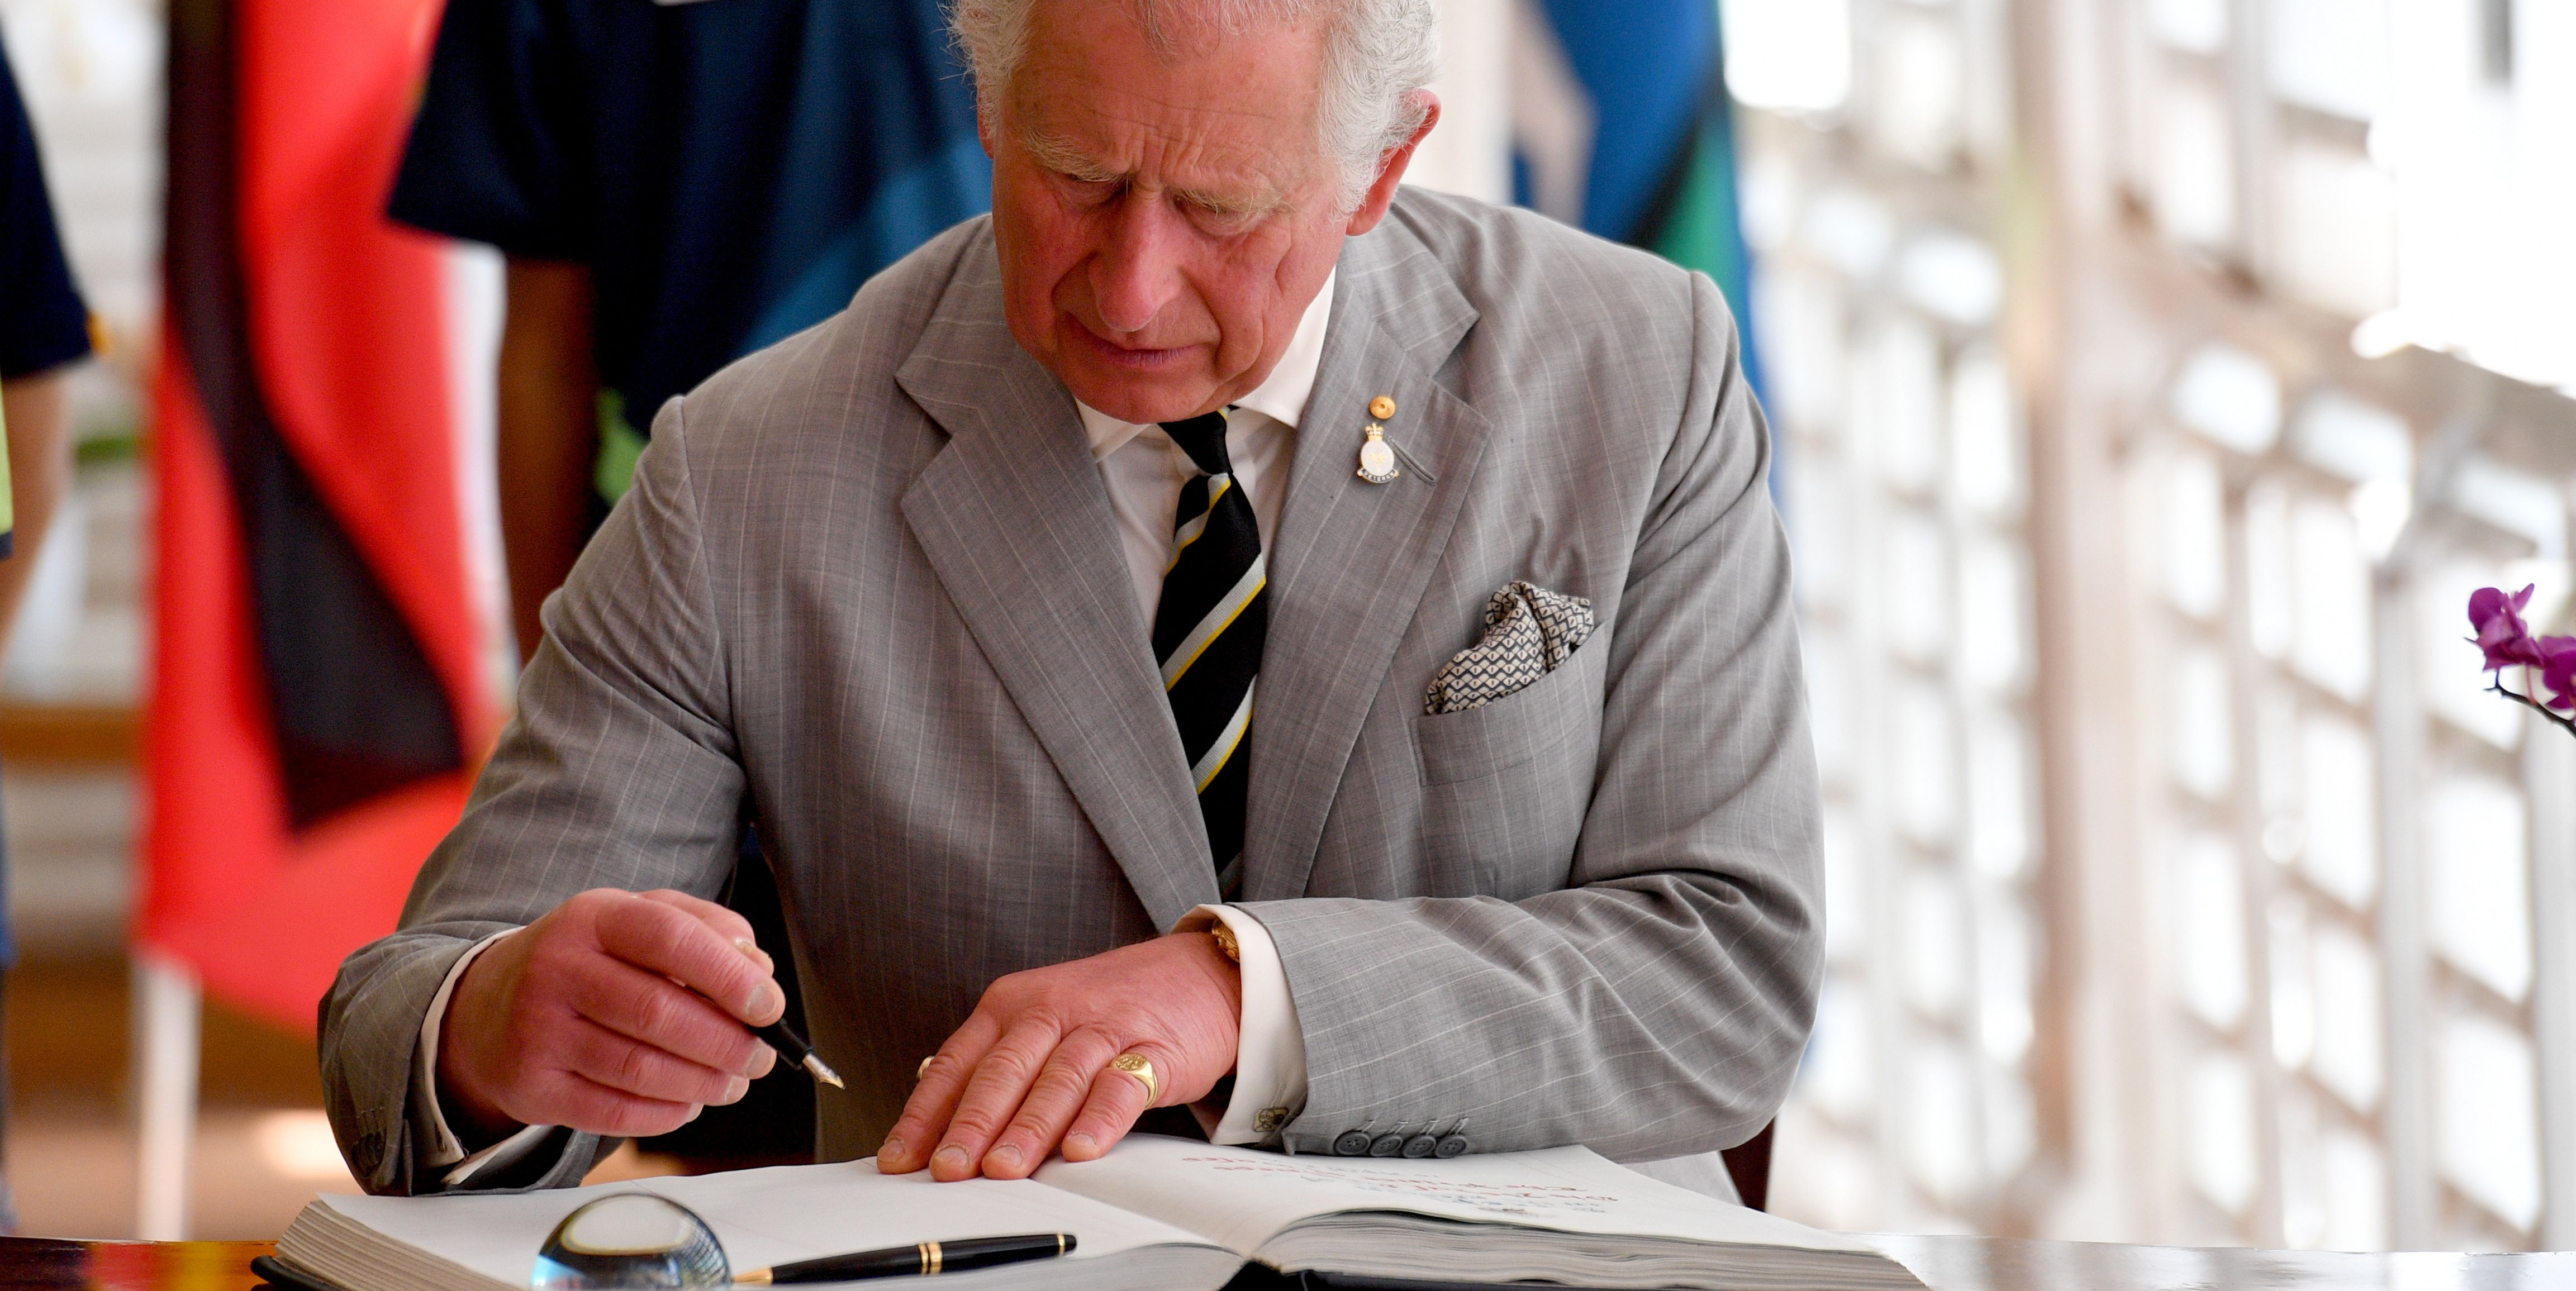 Prince Of Wales Visits The Northern Territory - Day 2